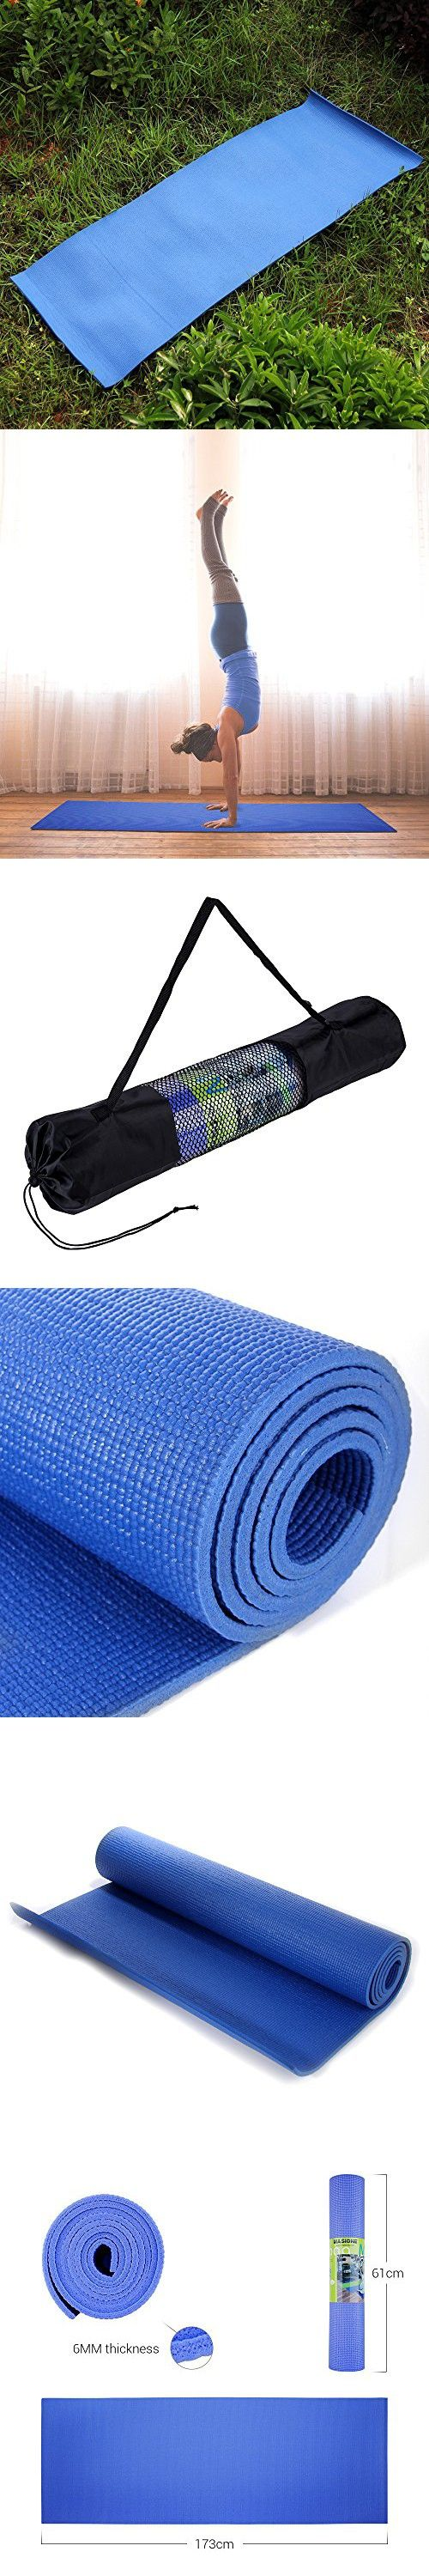 Masione Yoga Mat 6mm 1 4 Inch Thick Pvc High Density Pad With Carry Bag 68 X24 For Fitness Exercise Mat Yoga Camping Yoga Mat Mat Exercises Exercise